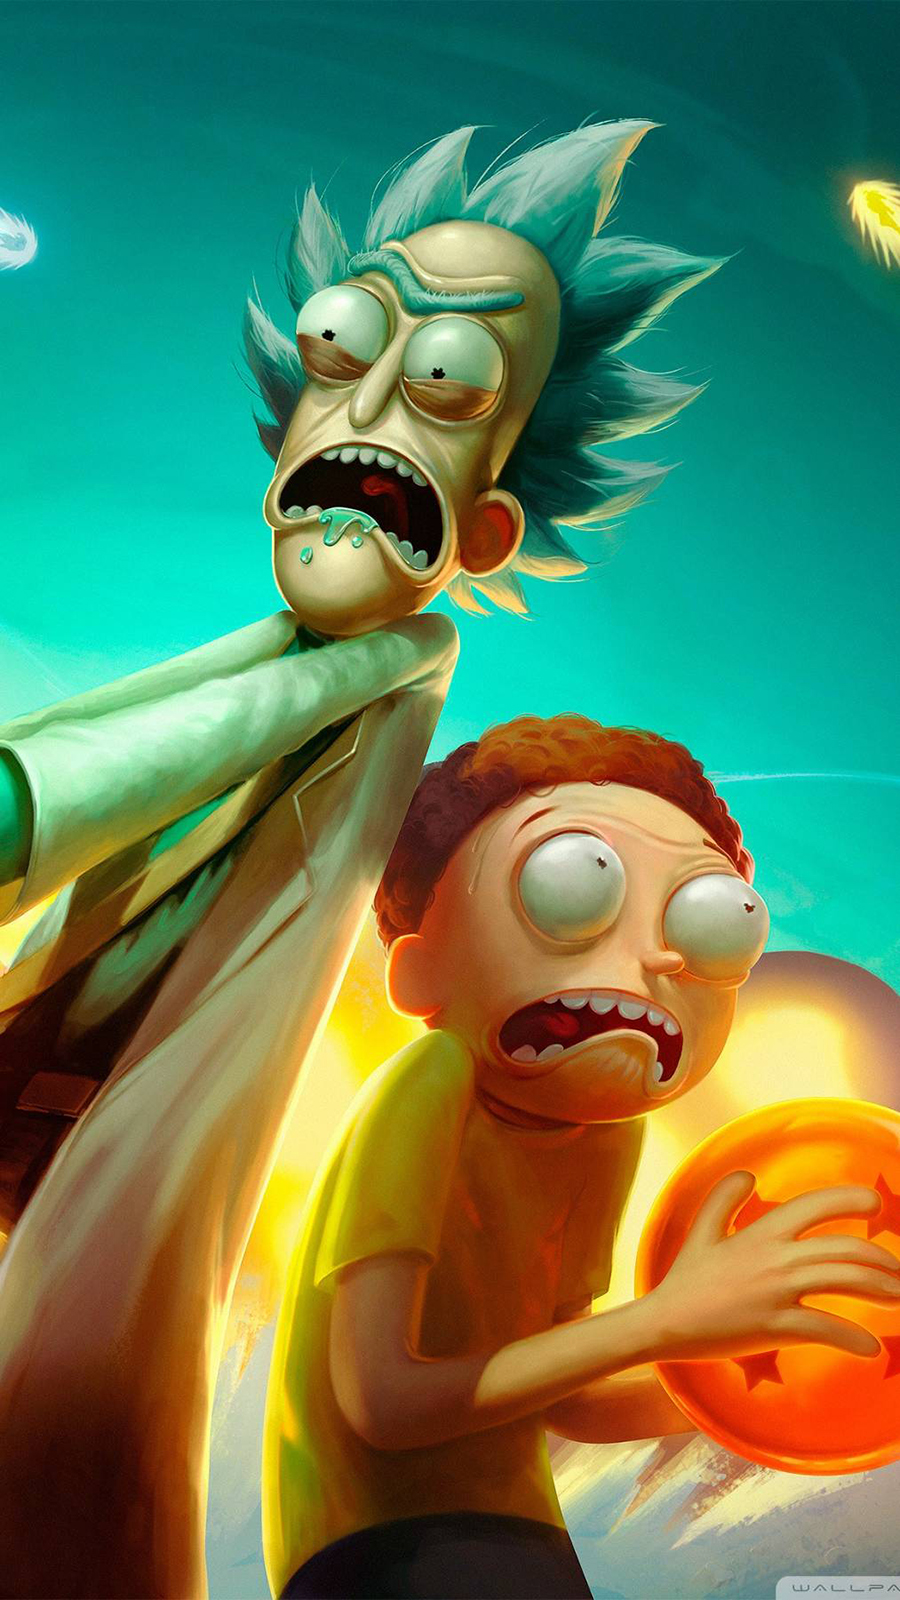 Rick & Morty Character Wallpapers Now Download For Your Device